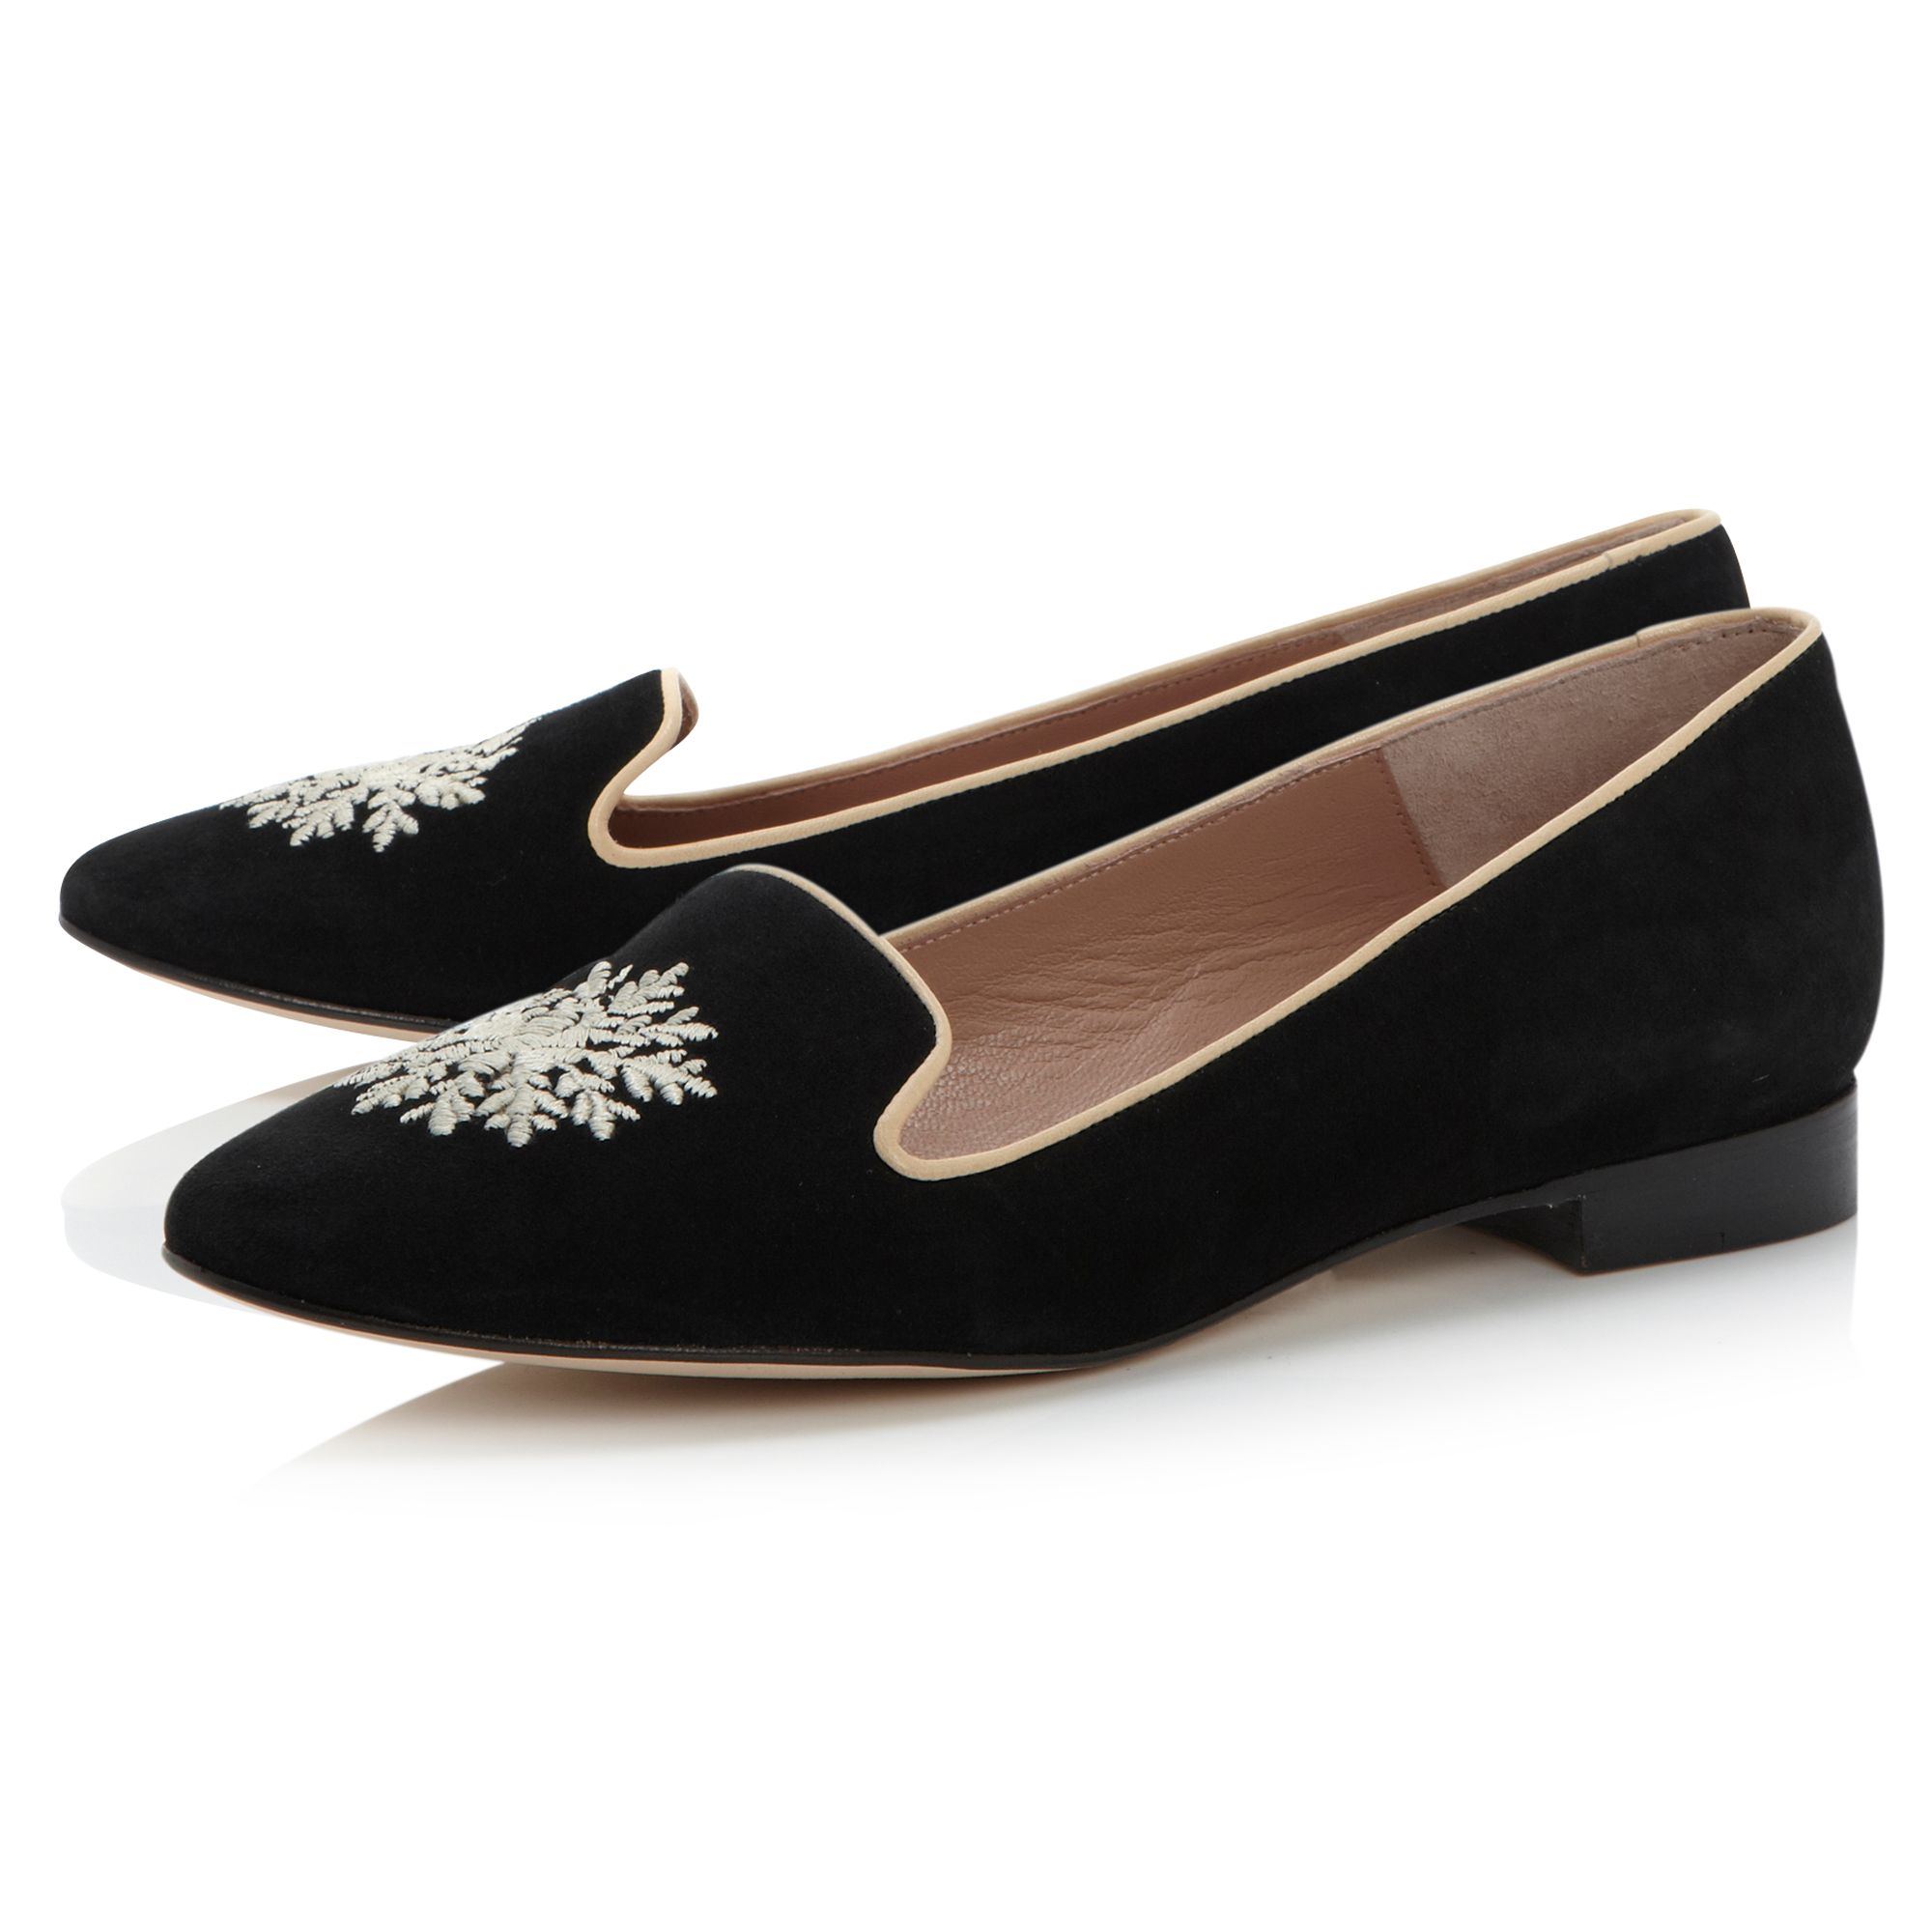 Gurleen embroided slipper loafer shoes